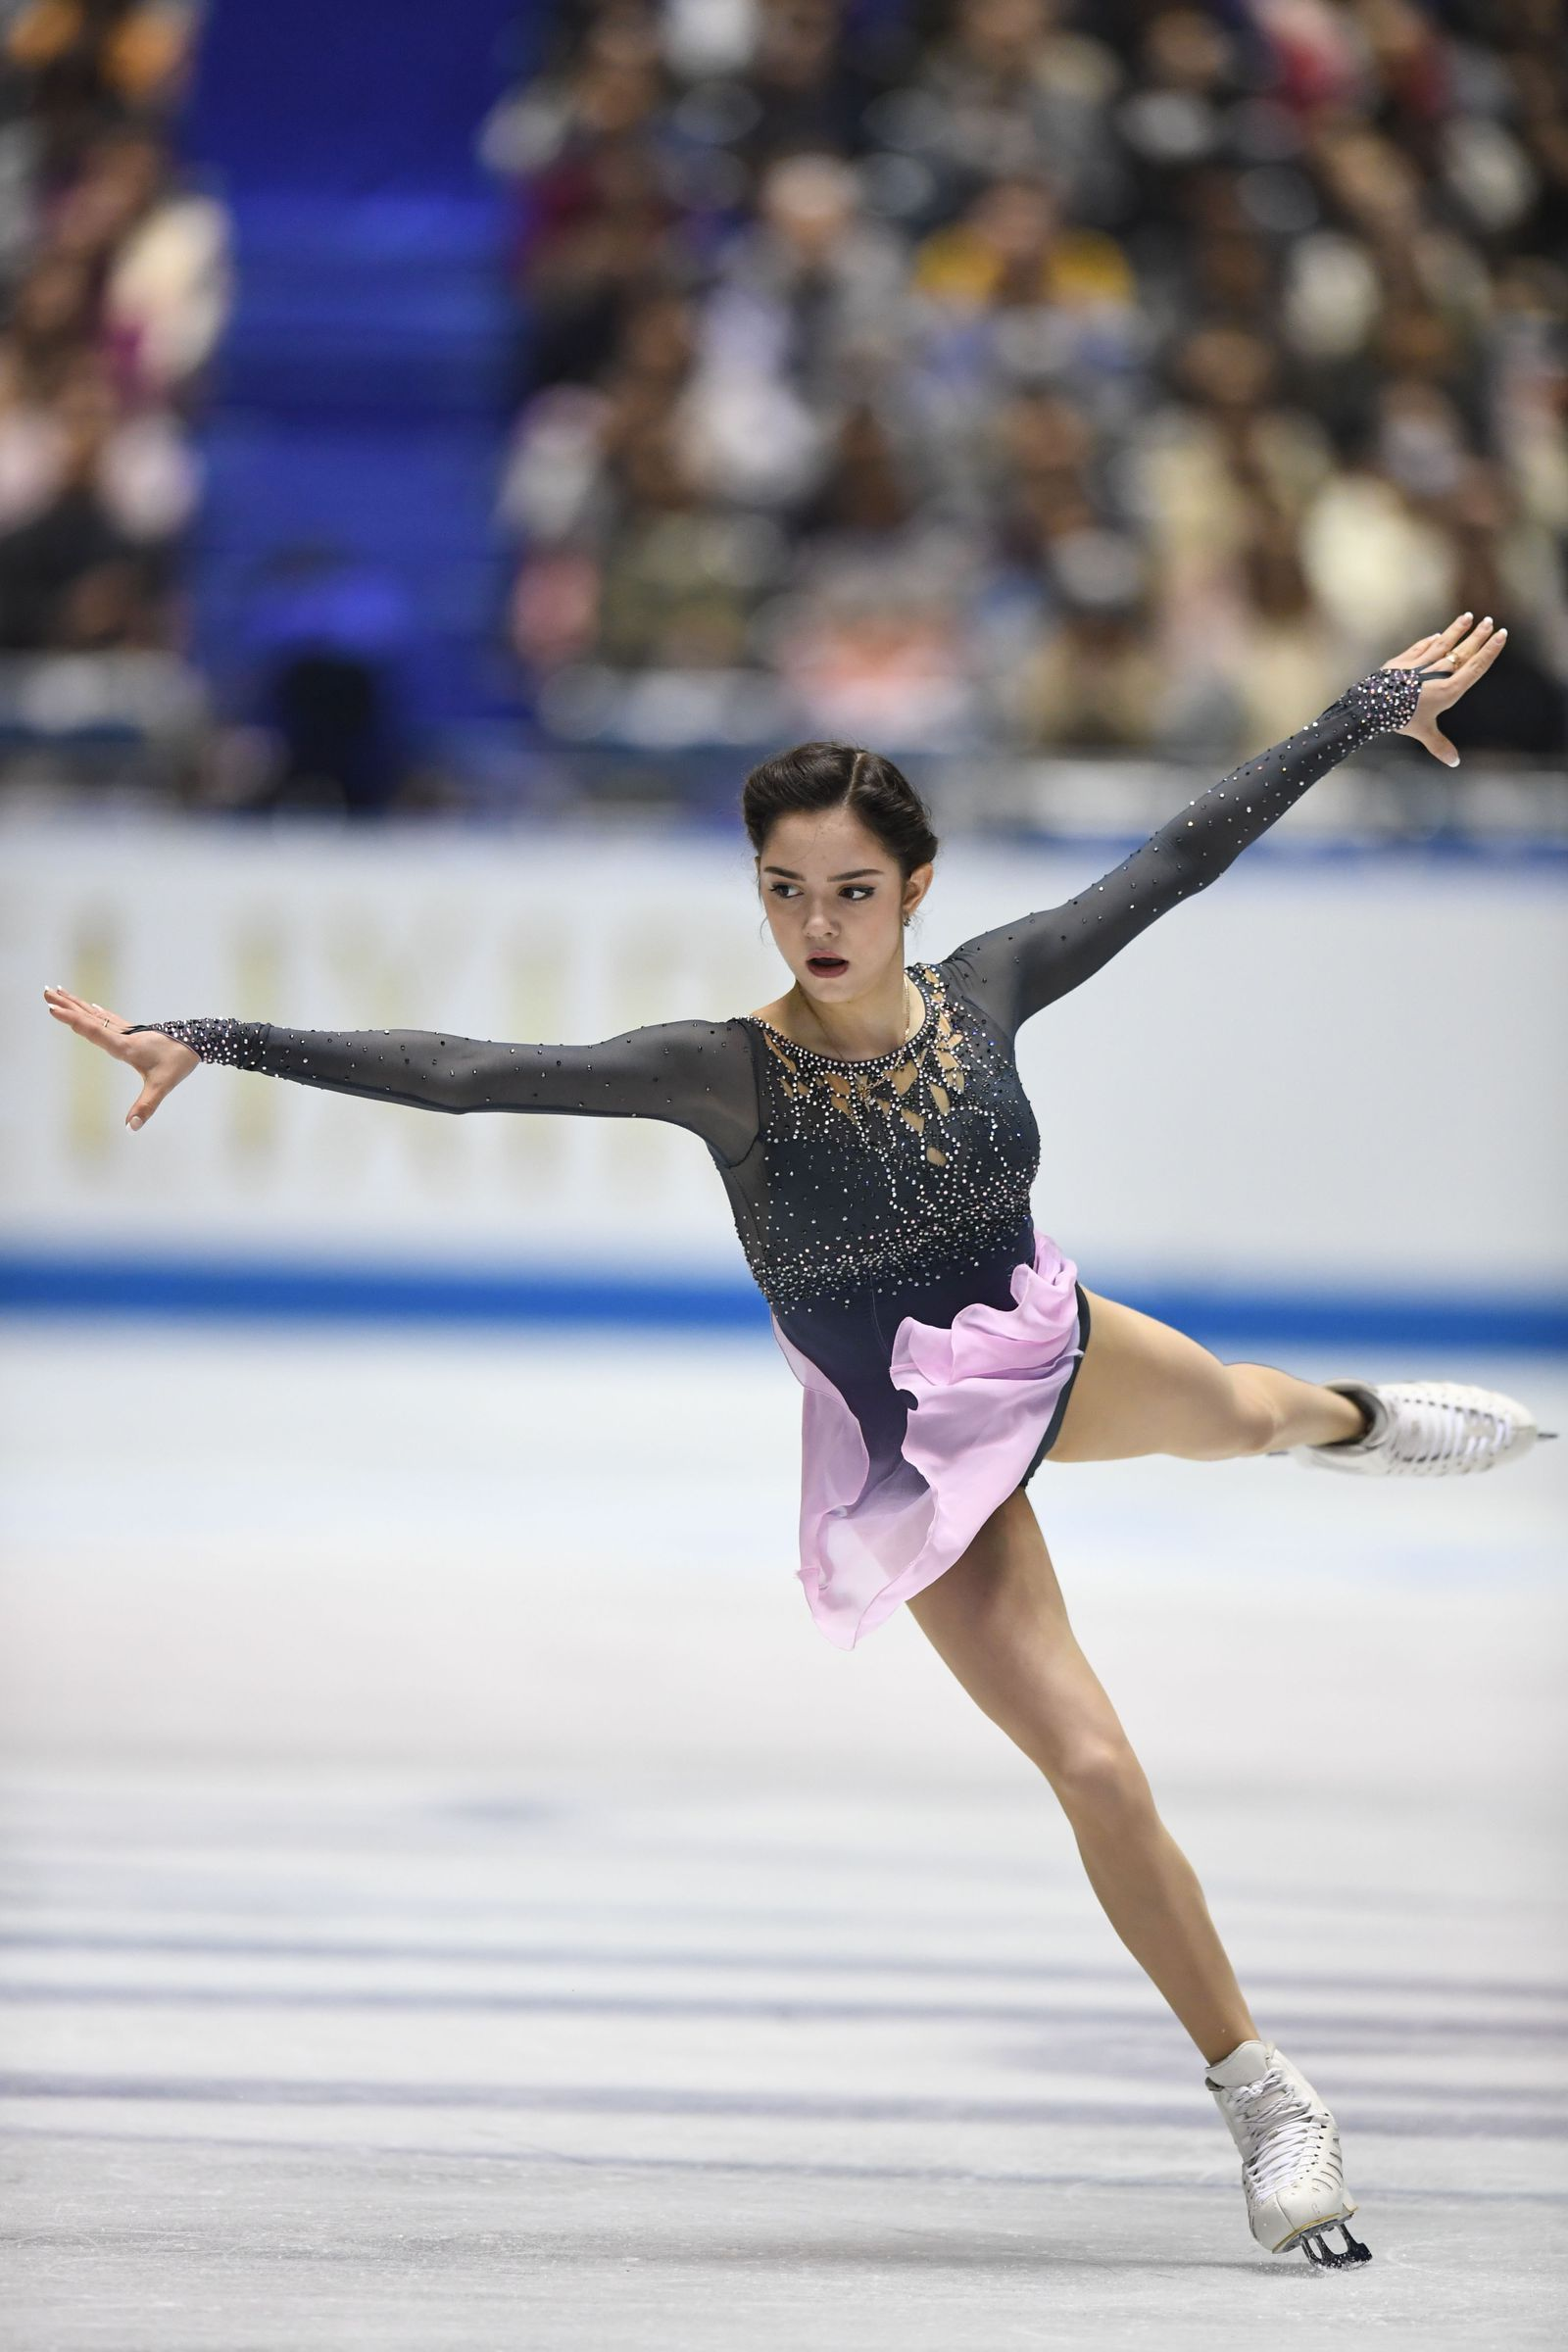 12 Things to Know About World Champion Figure Skater